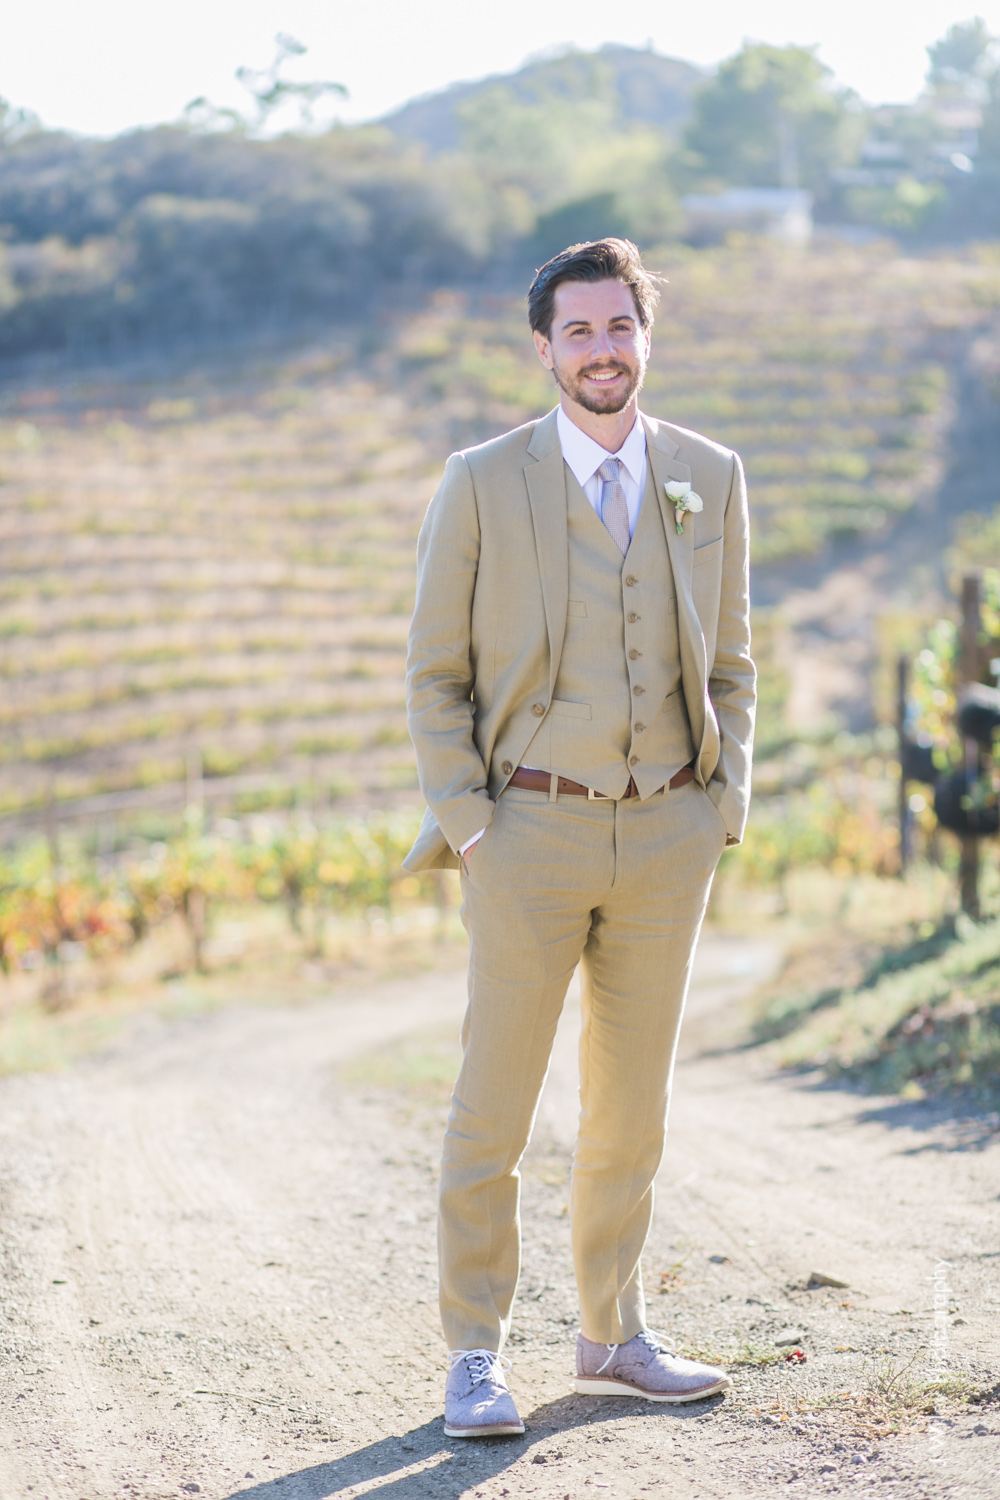 j wiley rustic whimiscal saddlerock ranch vineyard wedding malibu neutral gold mountains-1173